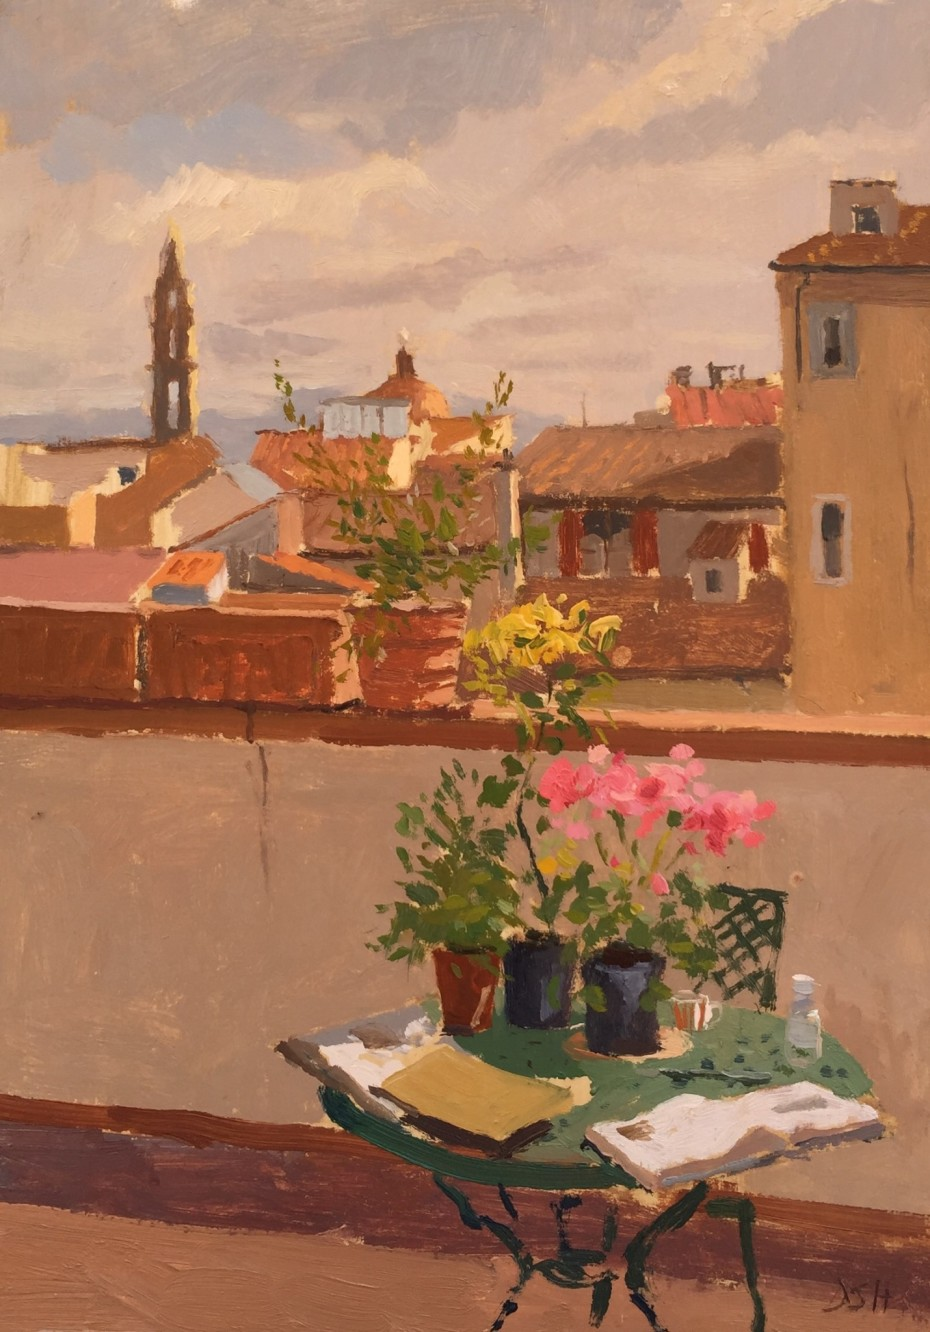 Morning Light Florence Roof Tops and Flowers from the Santo Spirito Market